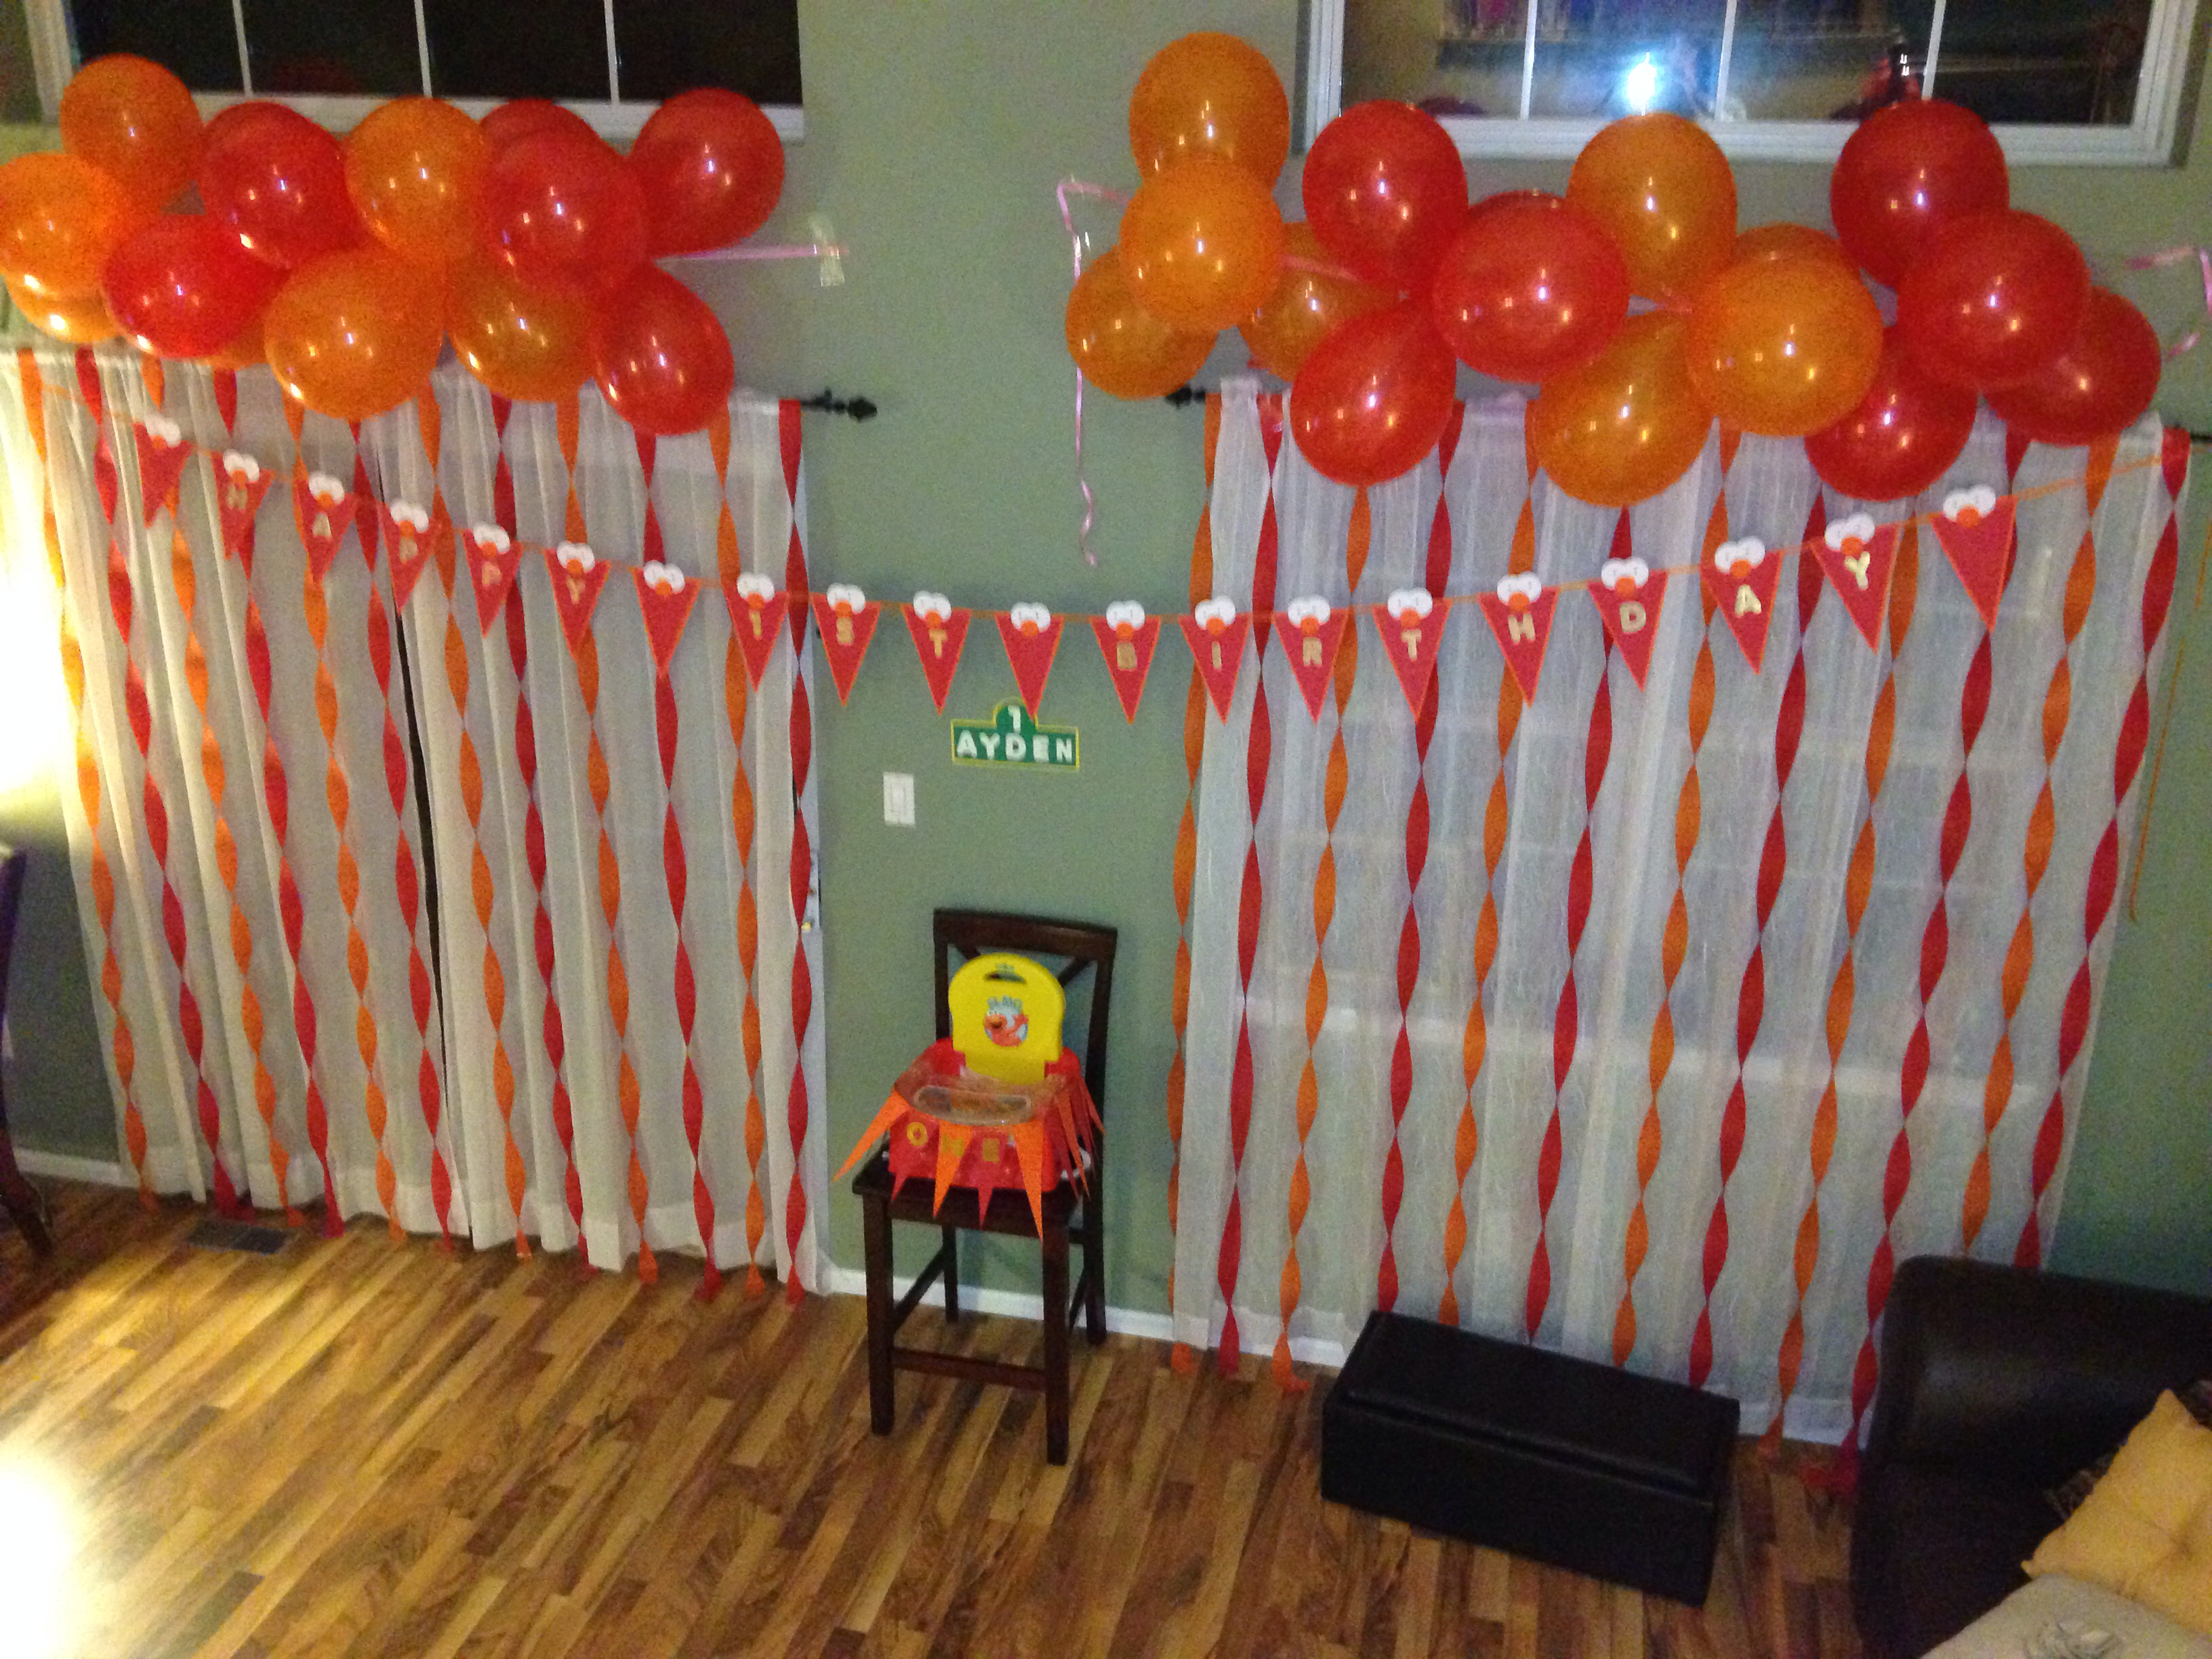 2nd birthday banners and balloons ; 23238e28f74ae03c841f1310c050fae3